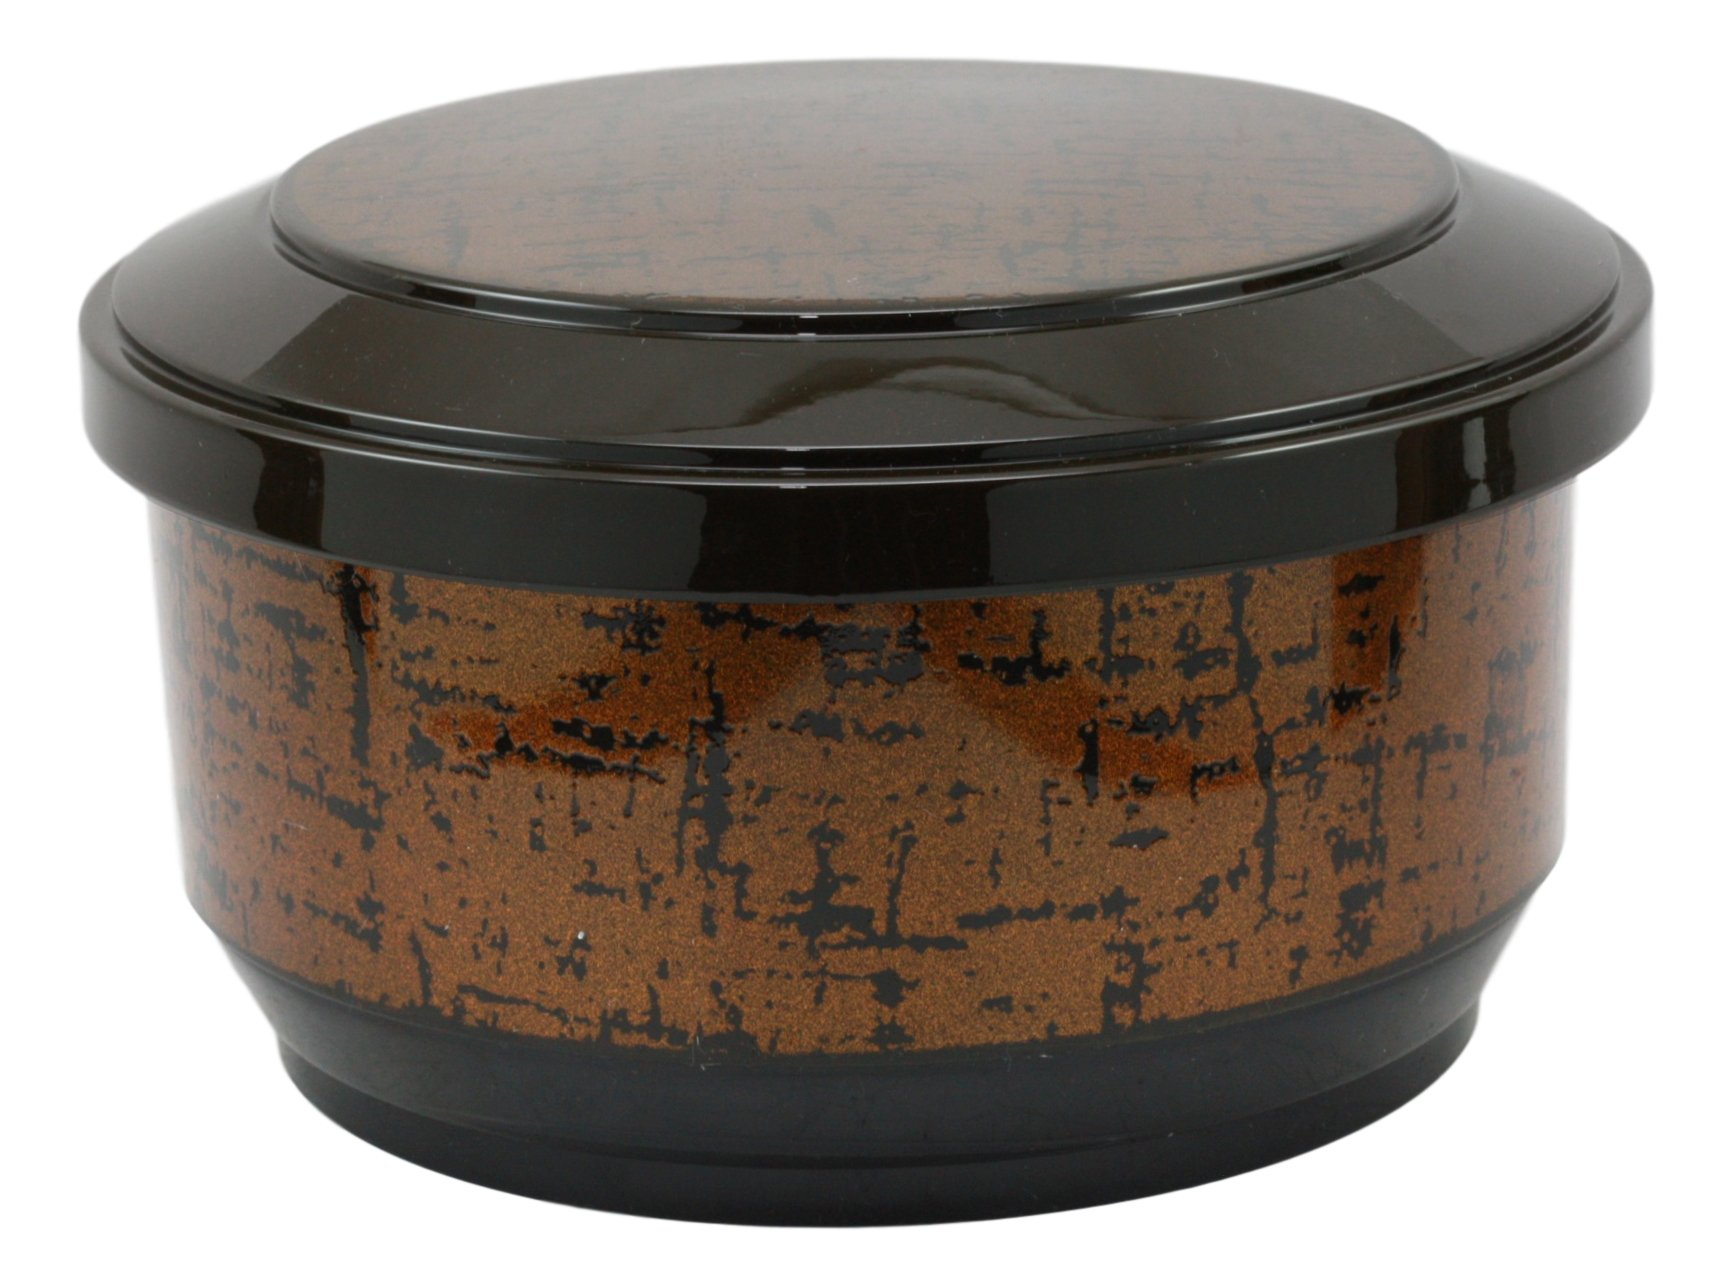 Ebros Large Japanese Restaurant Grade Gold Ohitsu Rice Container Serving Bowl With Scoop For 3-4 People Party Hosting Restaurant Supply